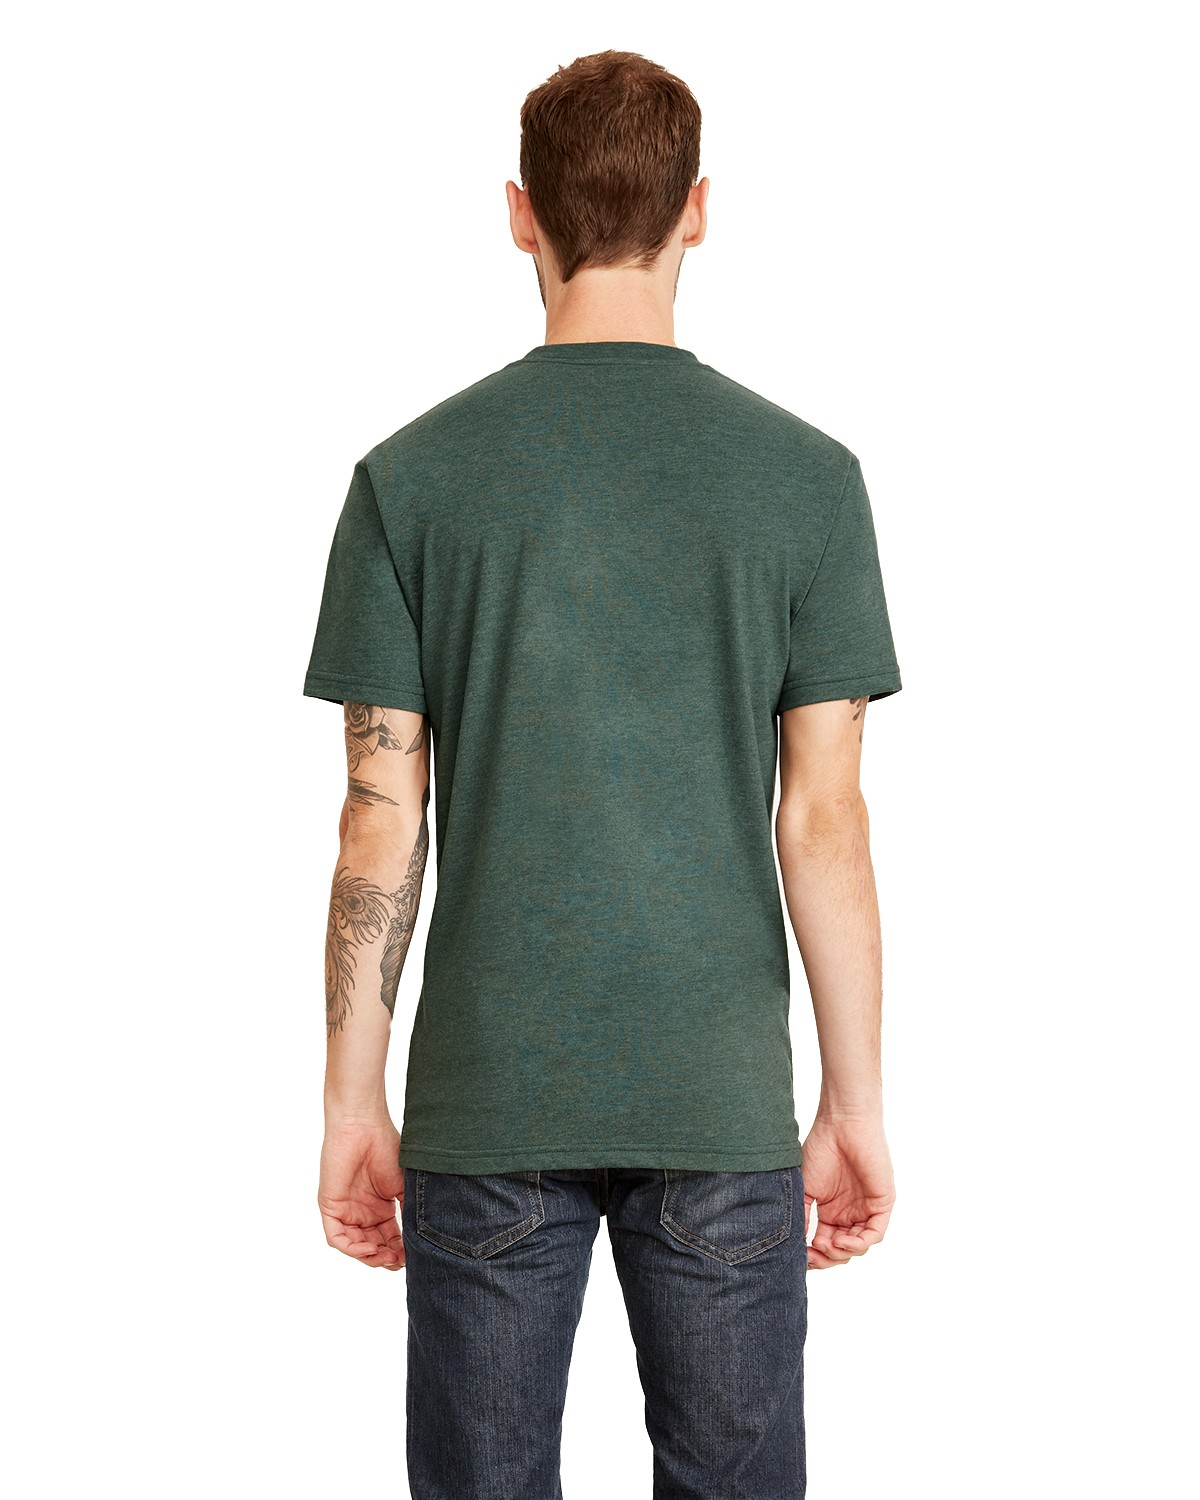 6410 Next Level HTH FOREST GREEN